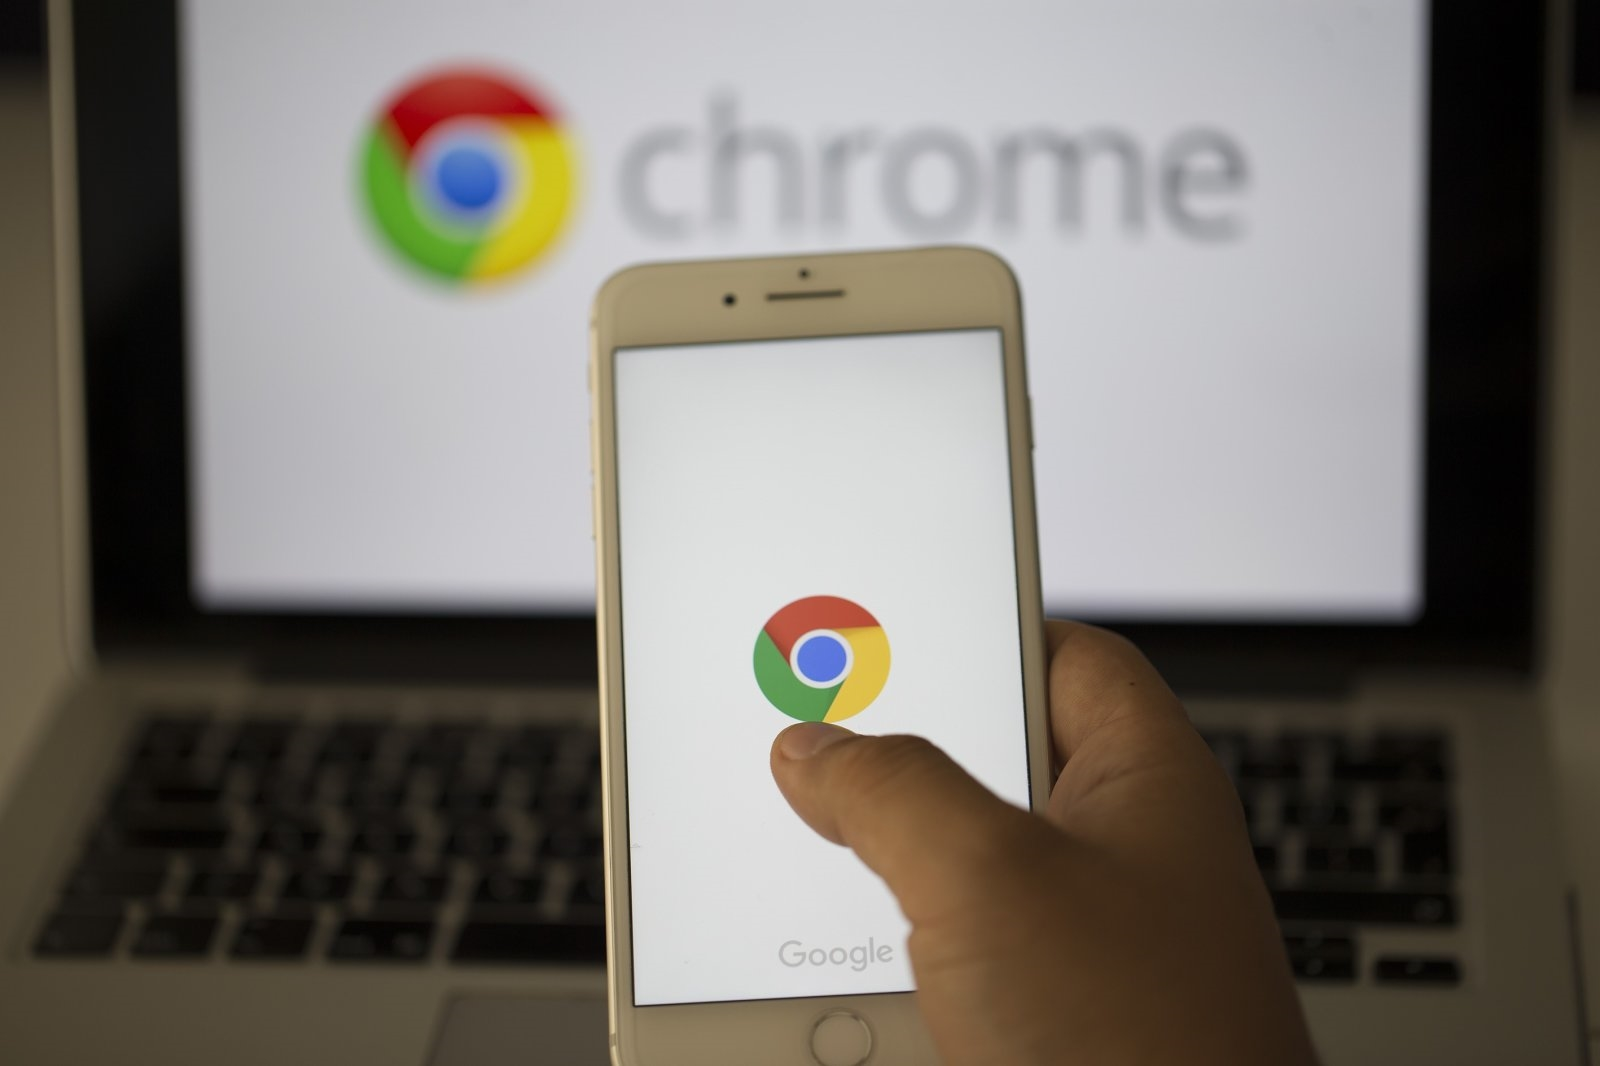 Google: Update Chrome now as attackers are 'actively exploiting' a bug | DeviceDaily.com